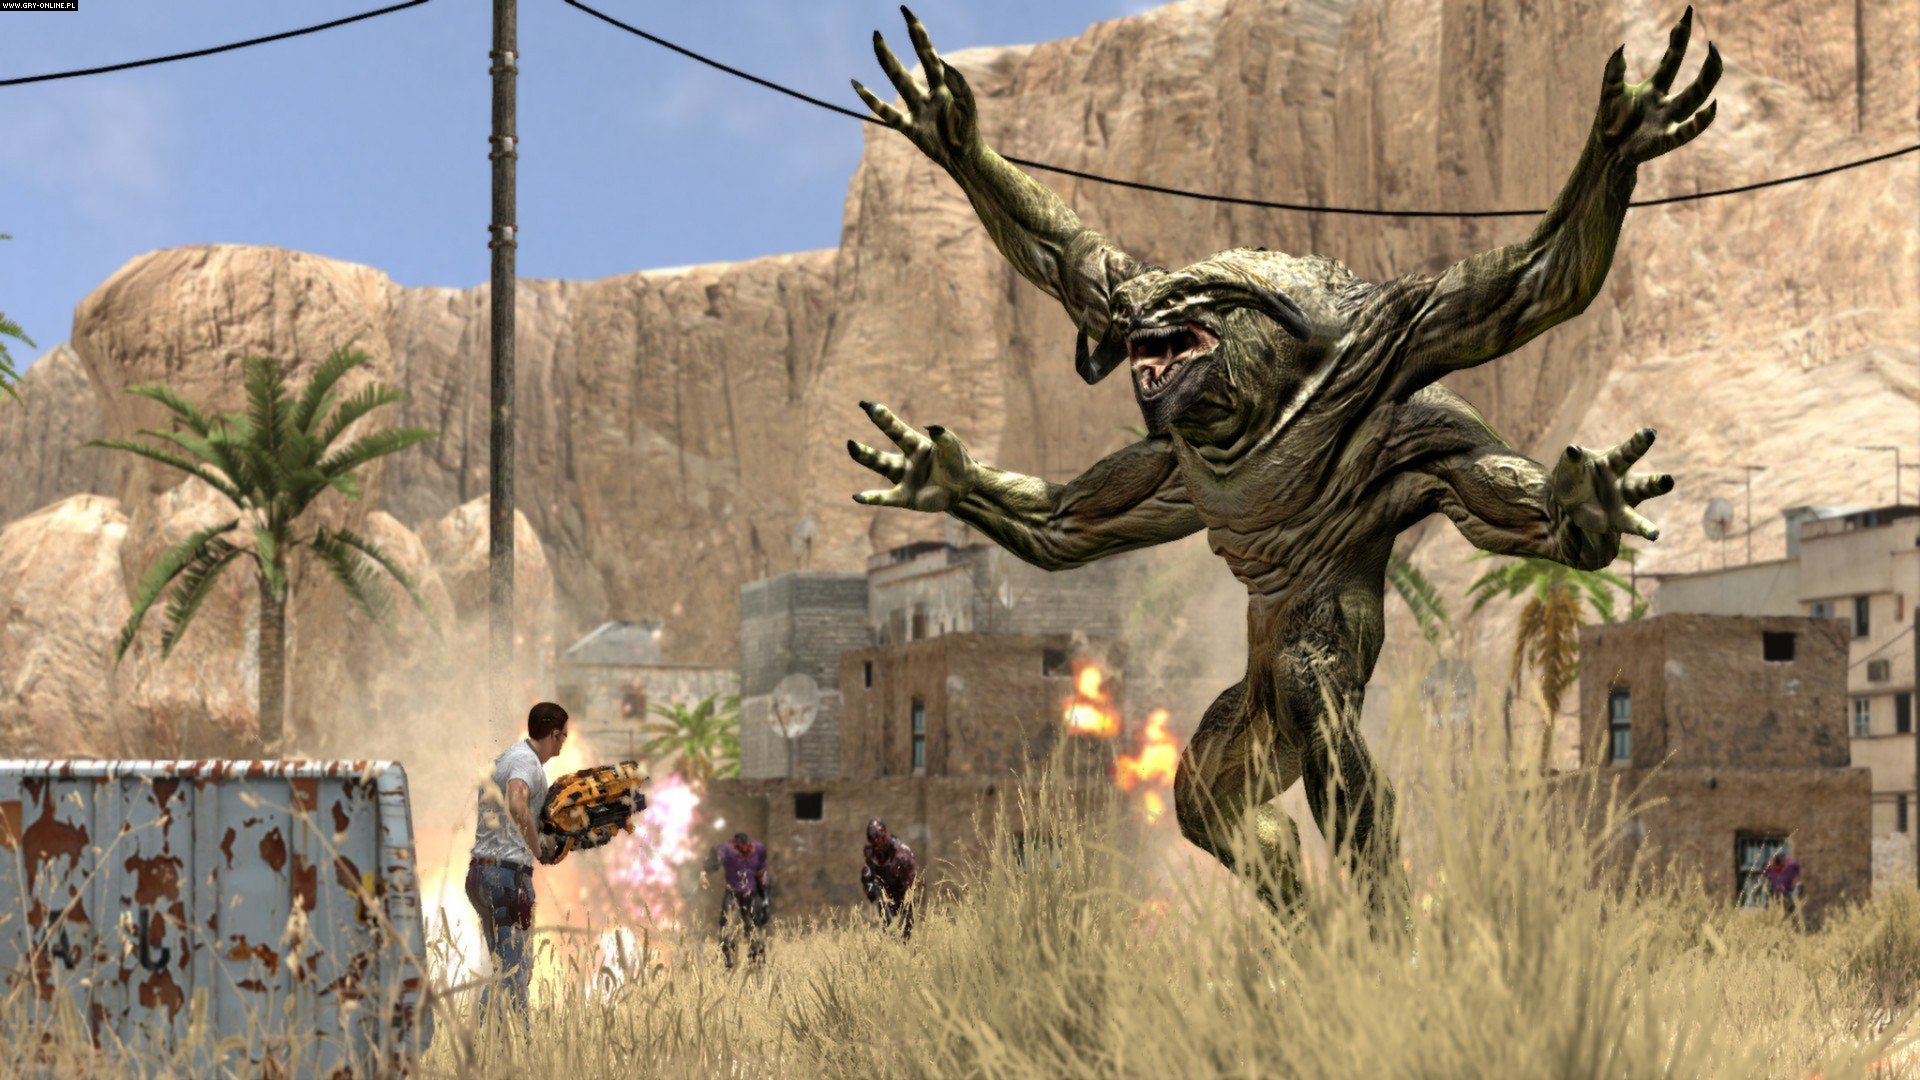 Serious Sam 3: BFE PC Gry Screen 6/48, Croteam, Devolver Digital